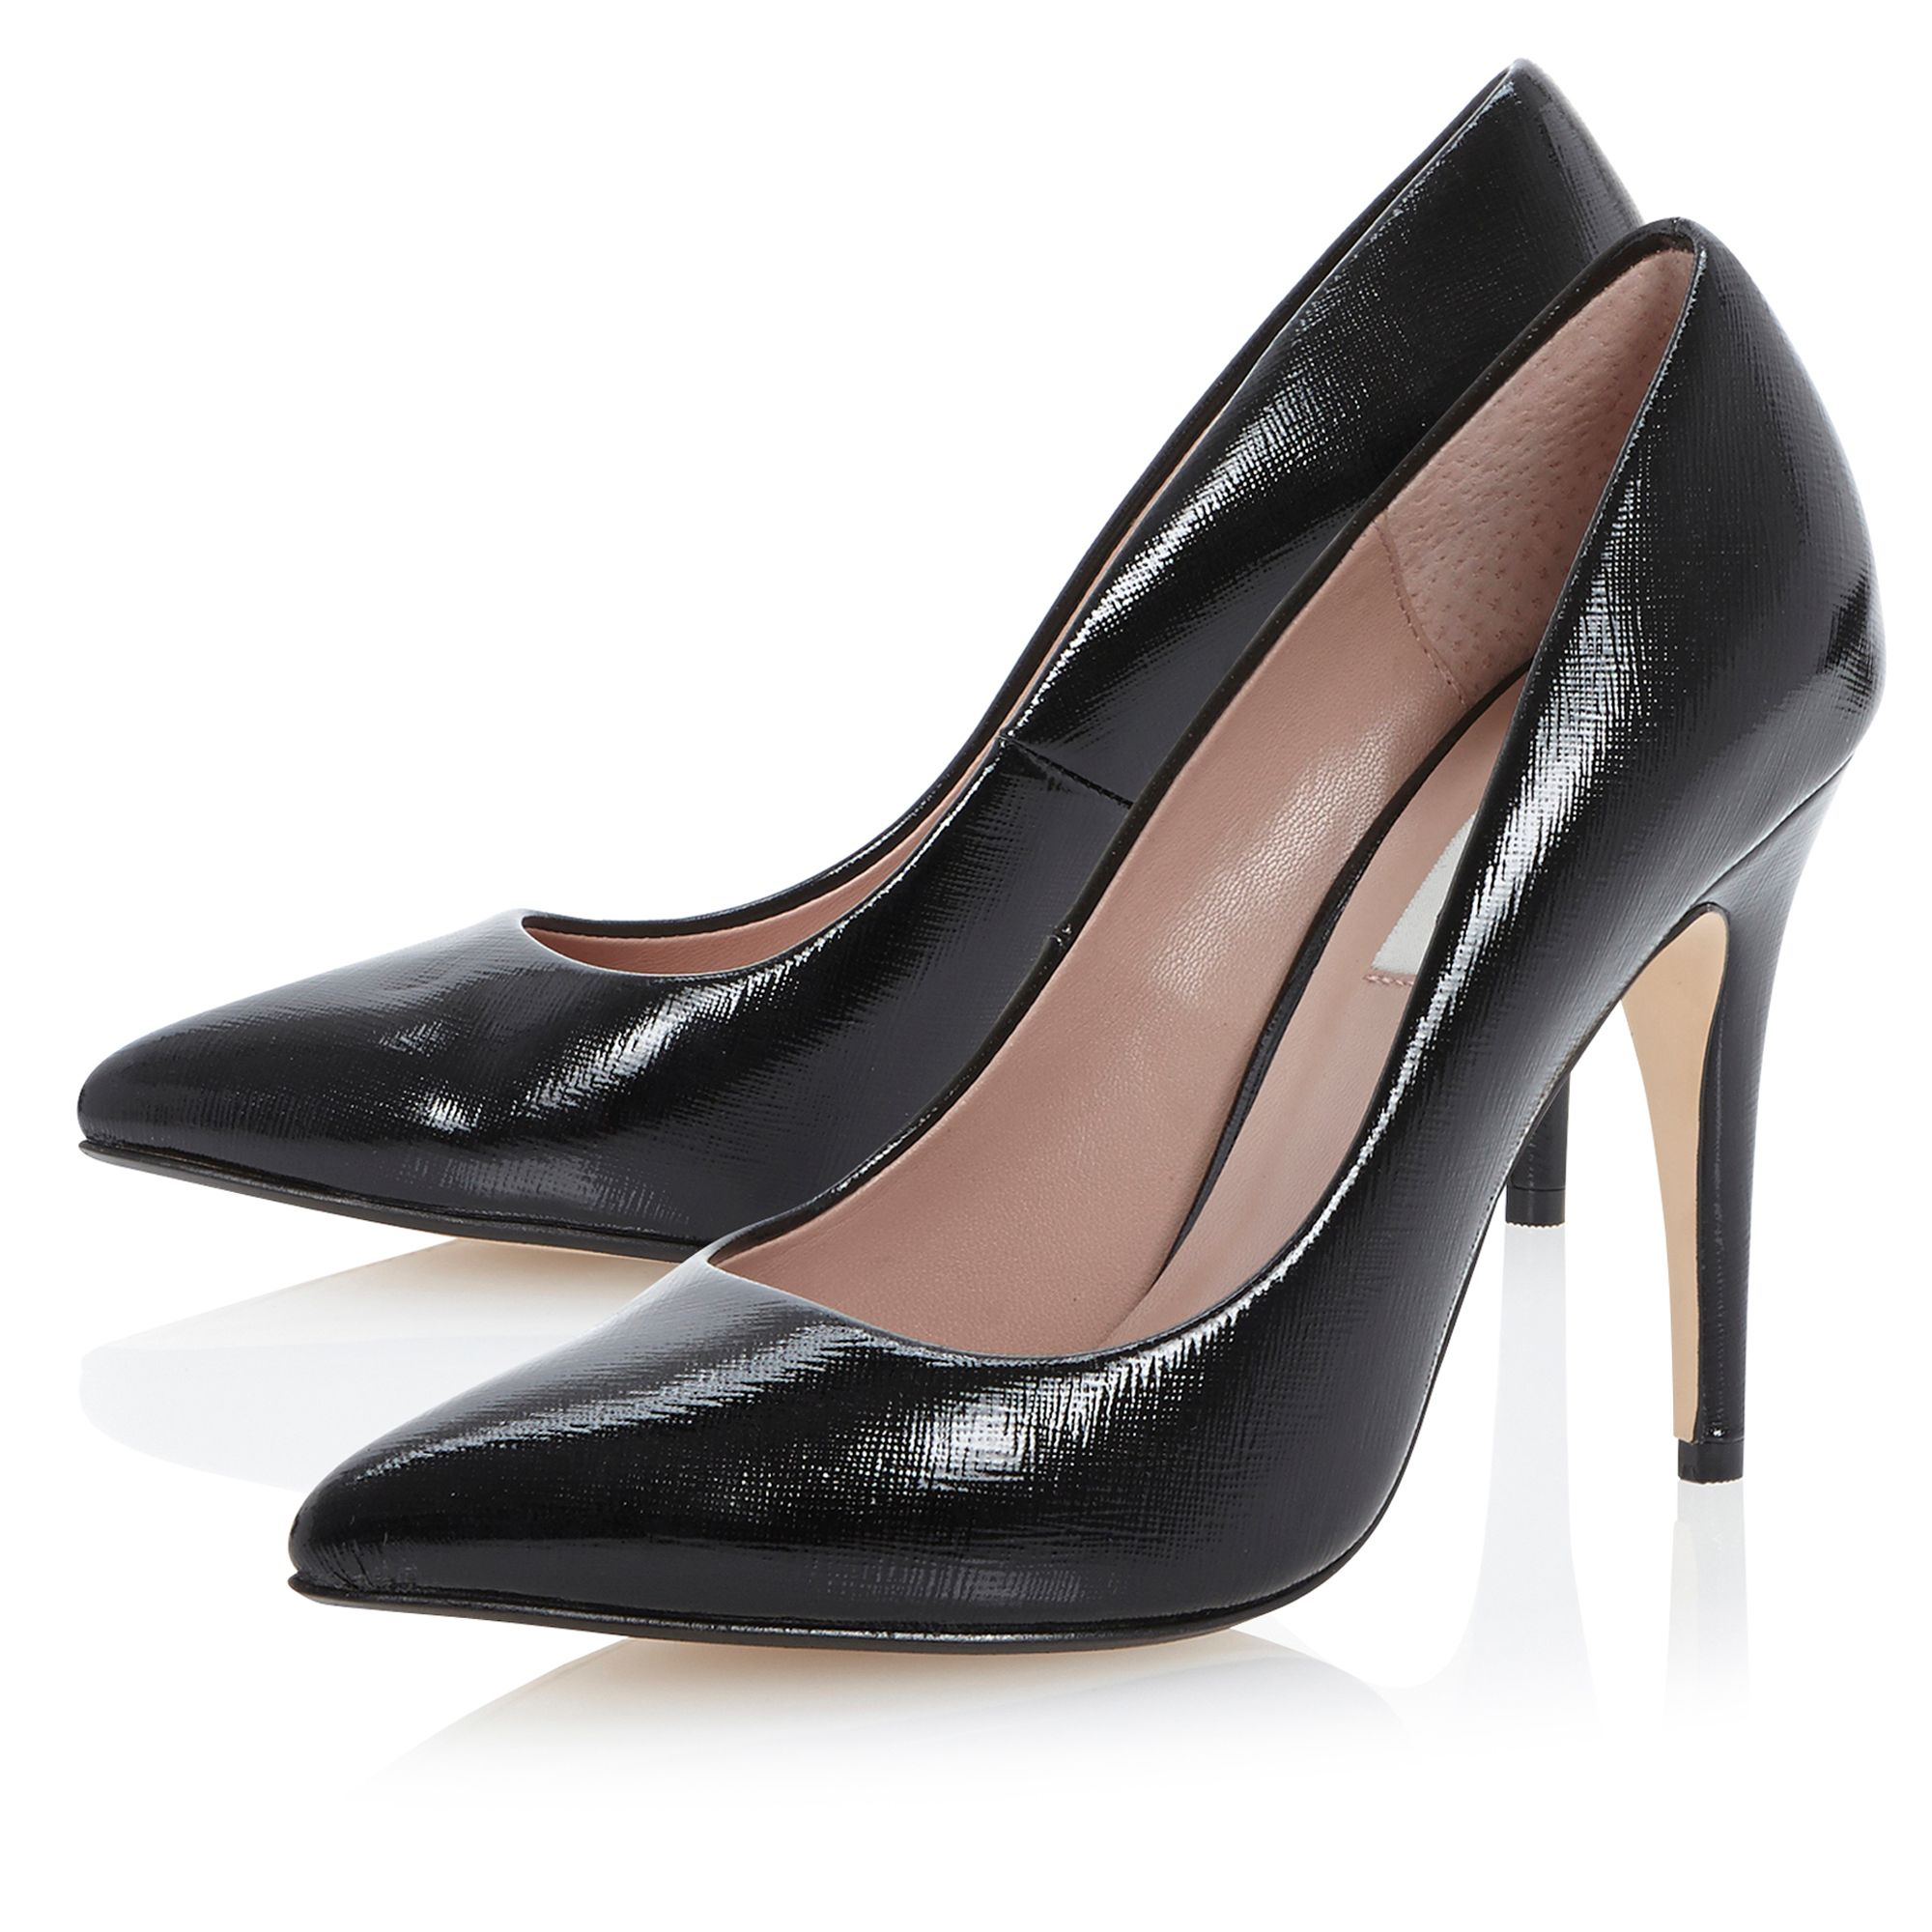 1257f9fbd17b Dune Abbigail Stiletto Heeled Court Shoes in Black (Black Reptile) | Lyst